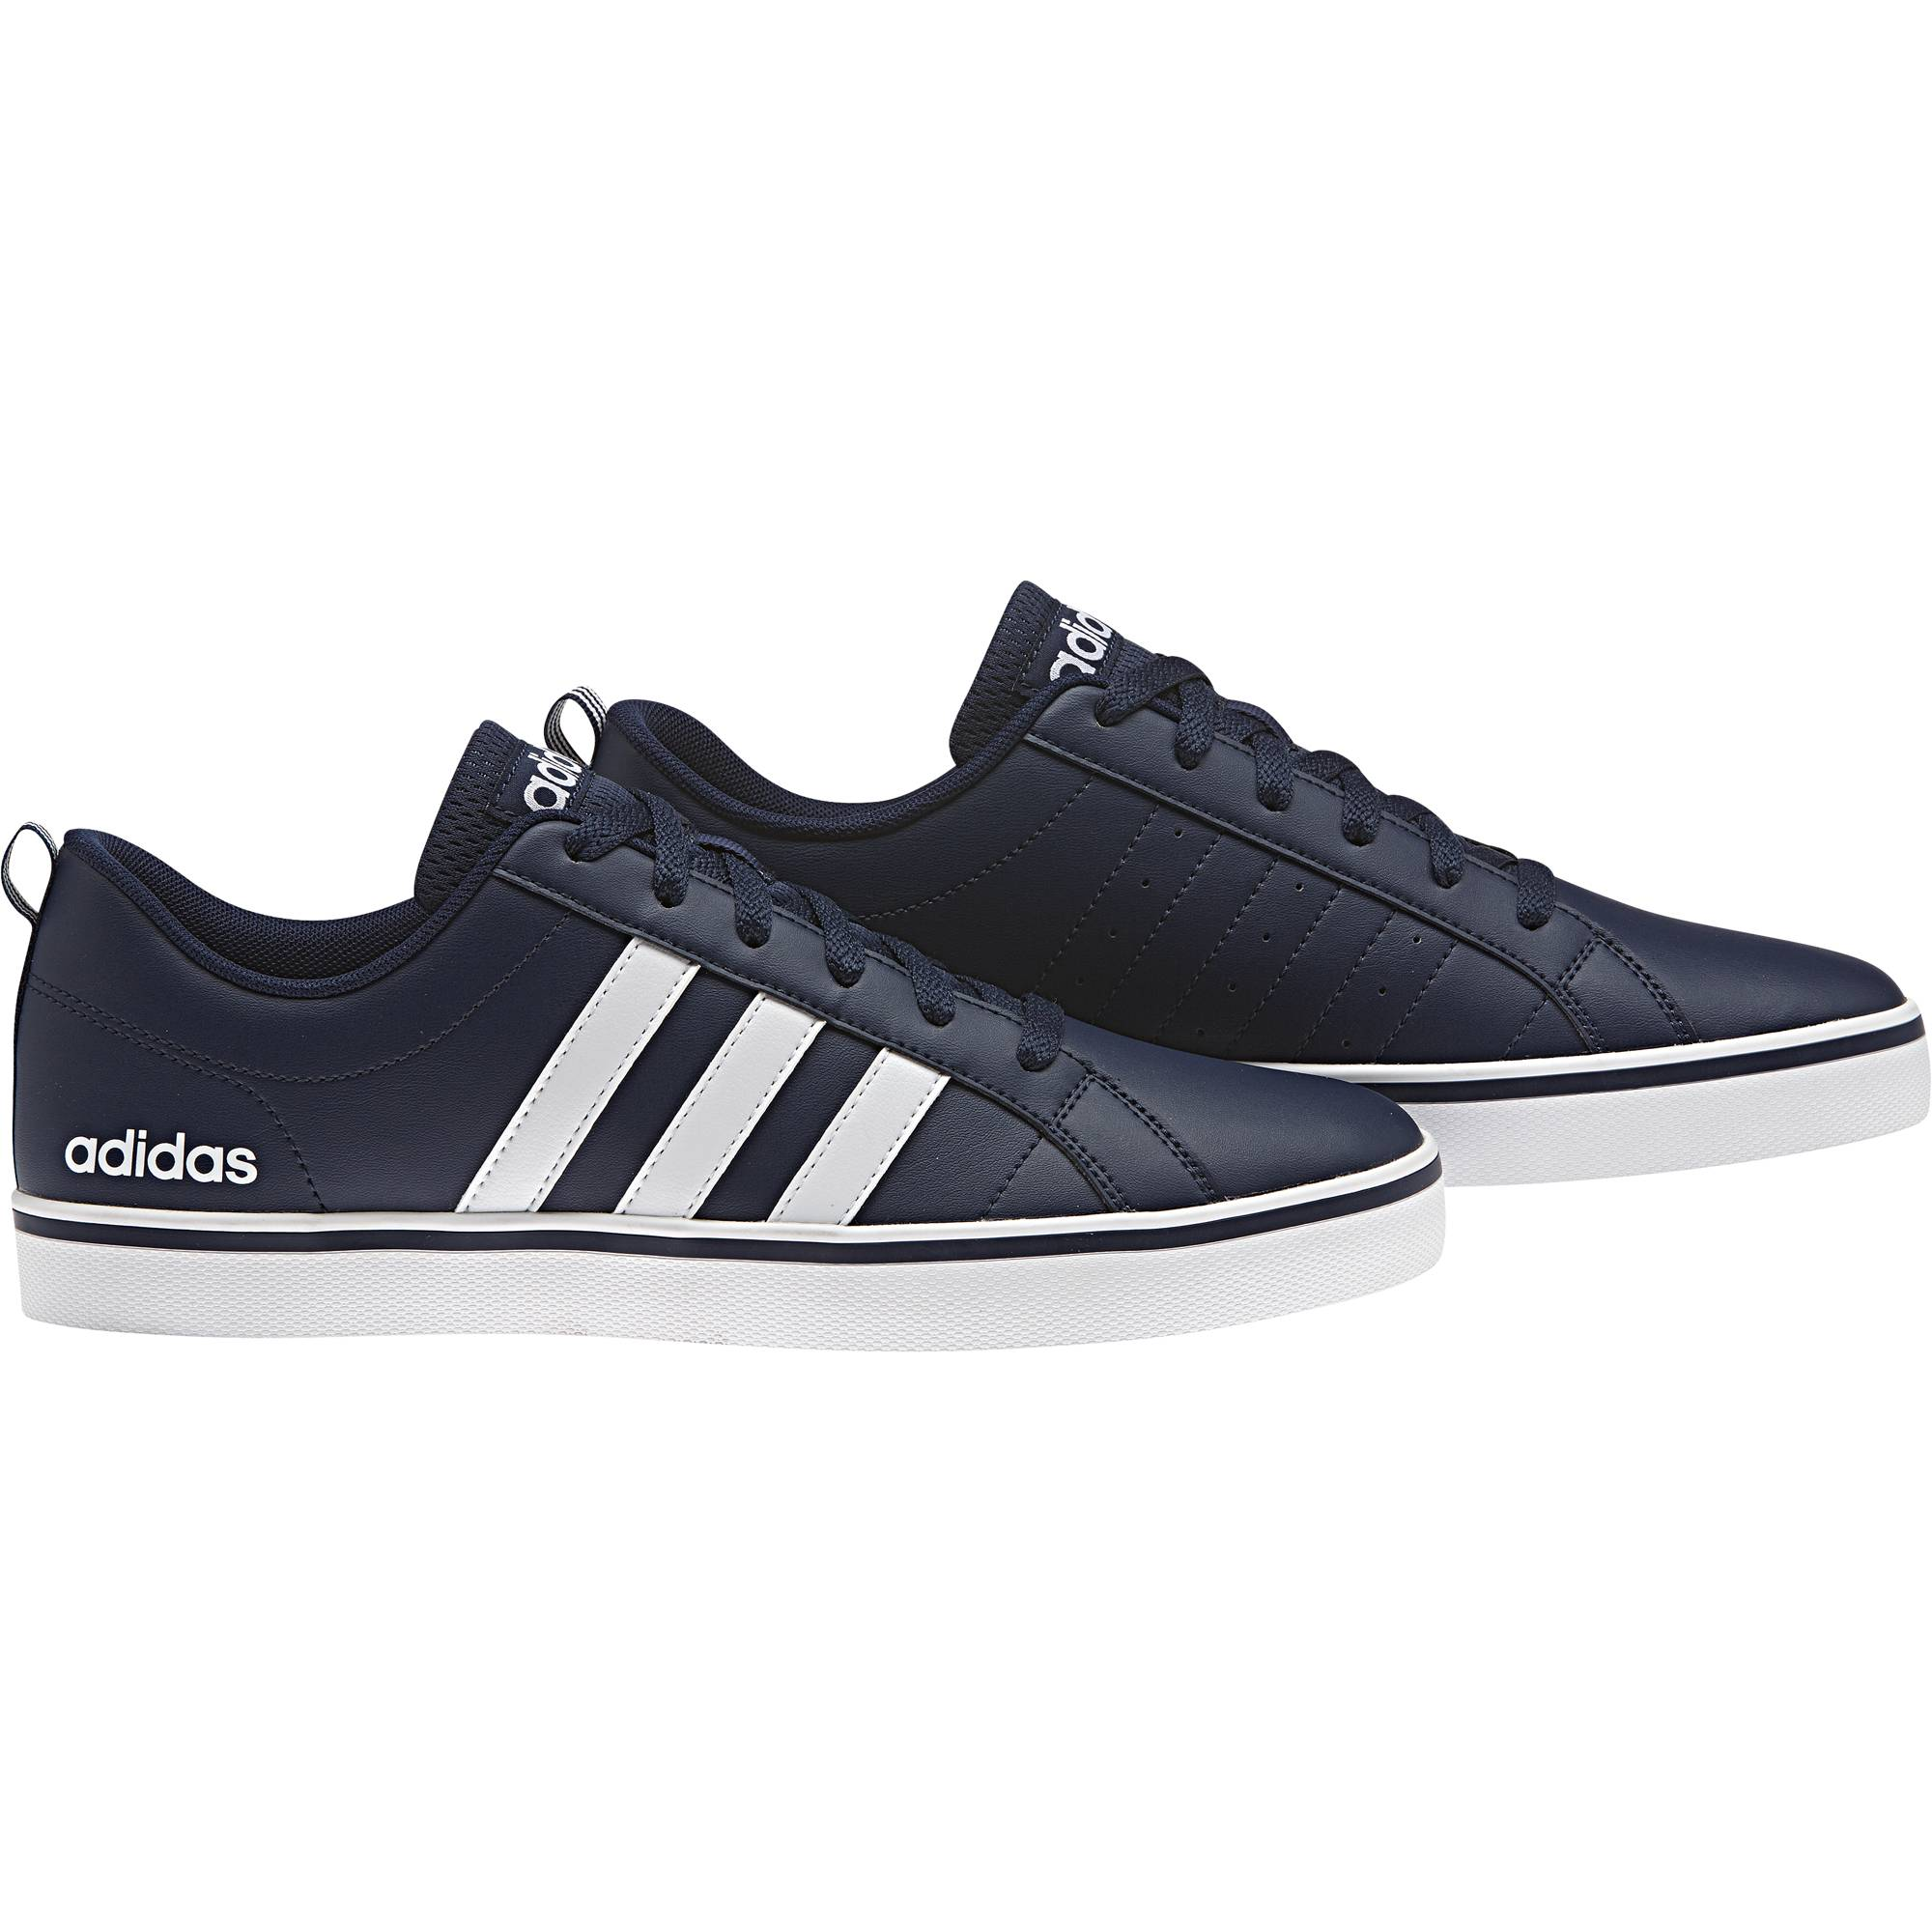 quality design 2602c 9ff7b ADIDAS NEO MEN ESSENTIALS VS PACE SHOES B74493  San Siro Sports  Casual